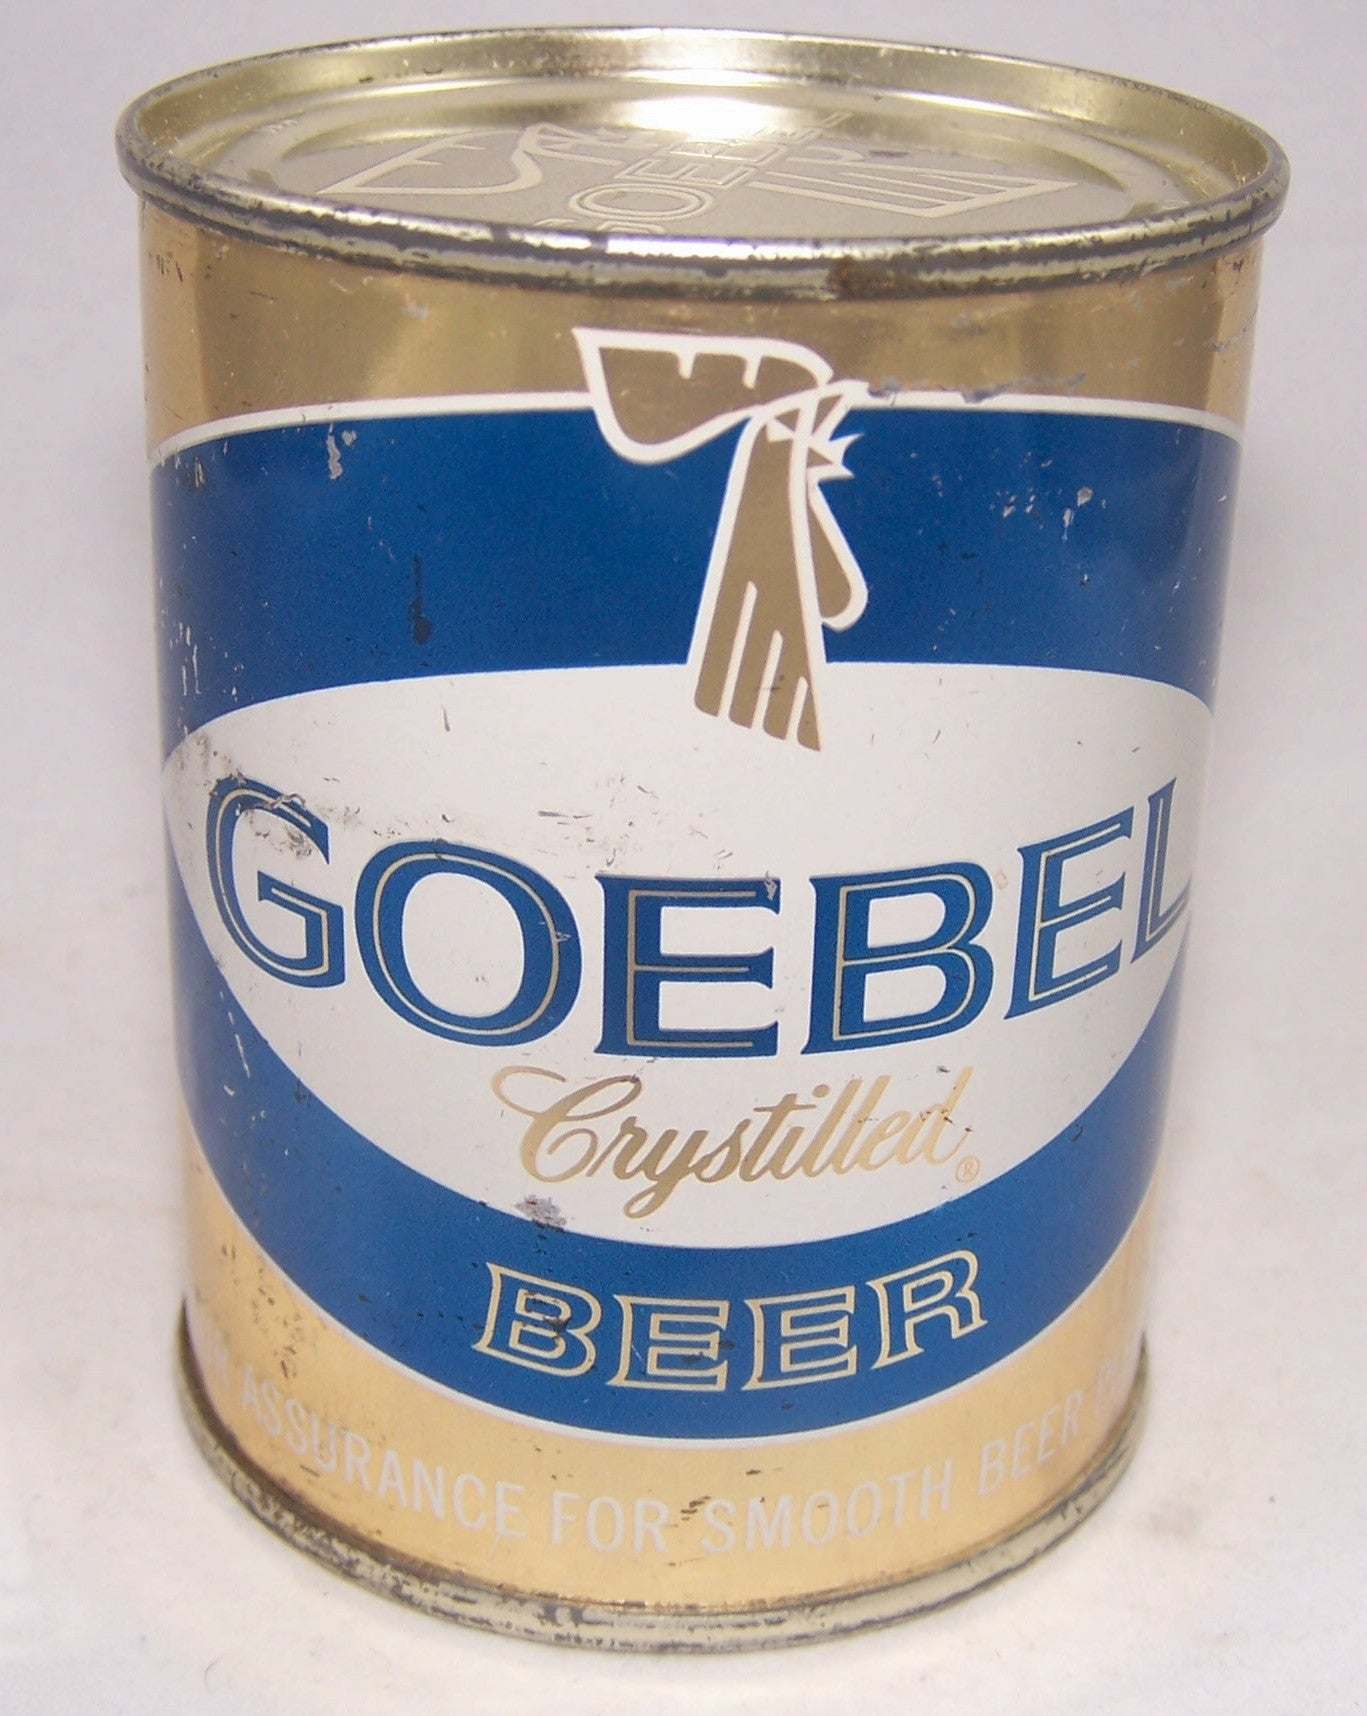 Goebel Crystilled Beer, USBC 241-26, Grade 1/1-